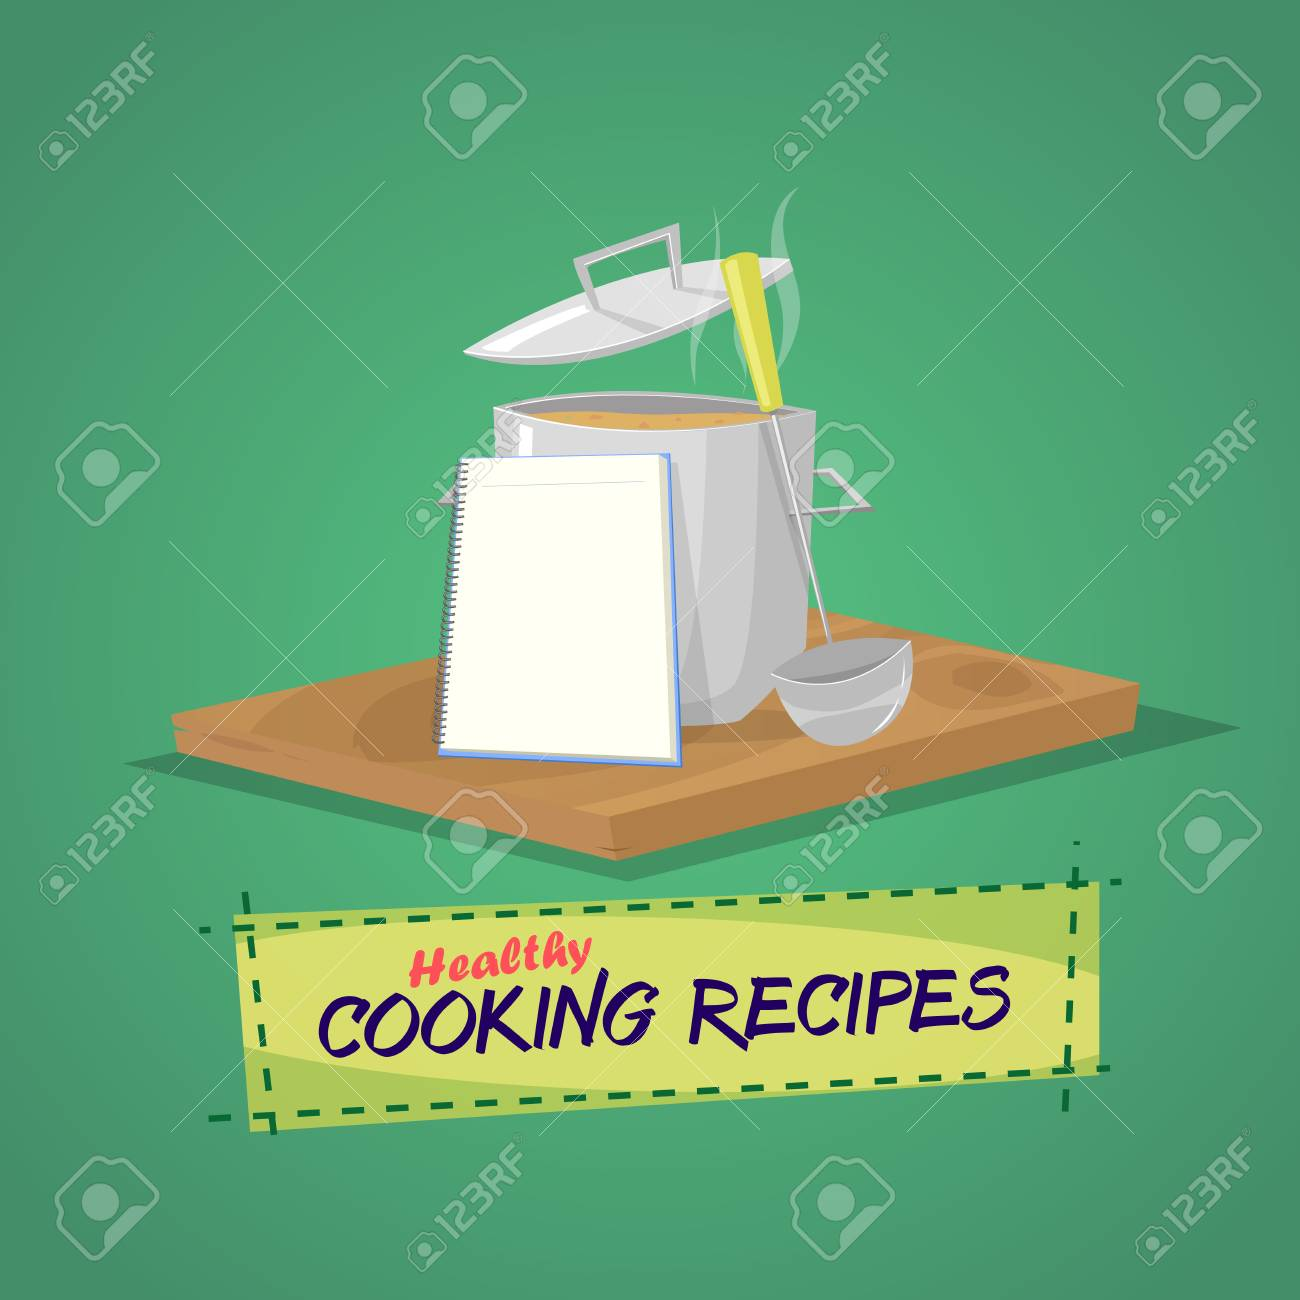 Healthy cooking recipes. Cooking pot and utensils book with recipes.Vector